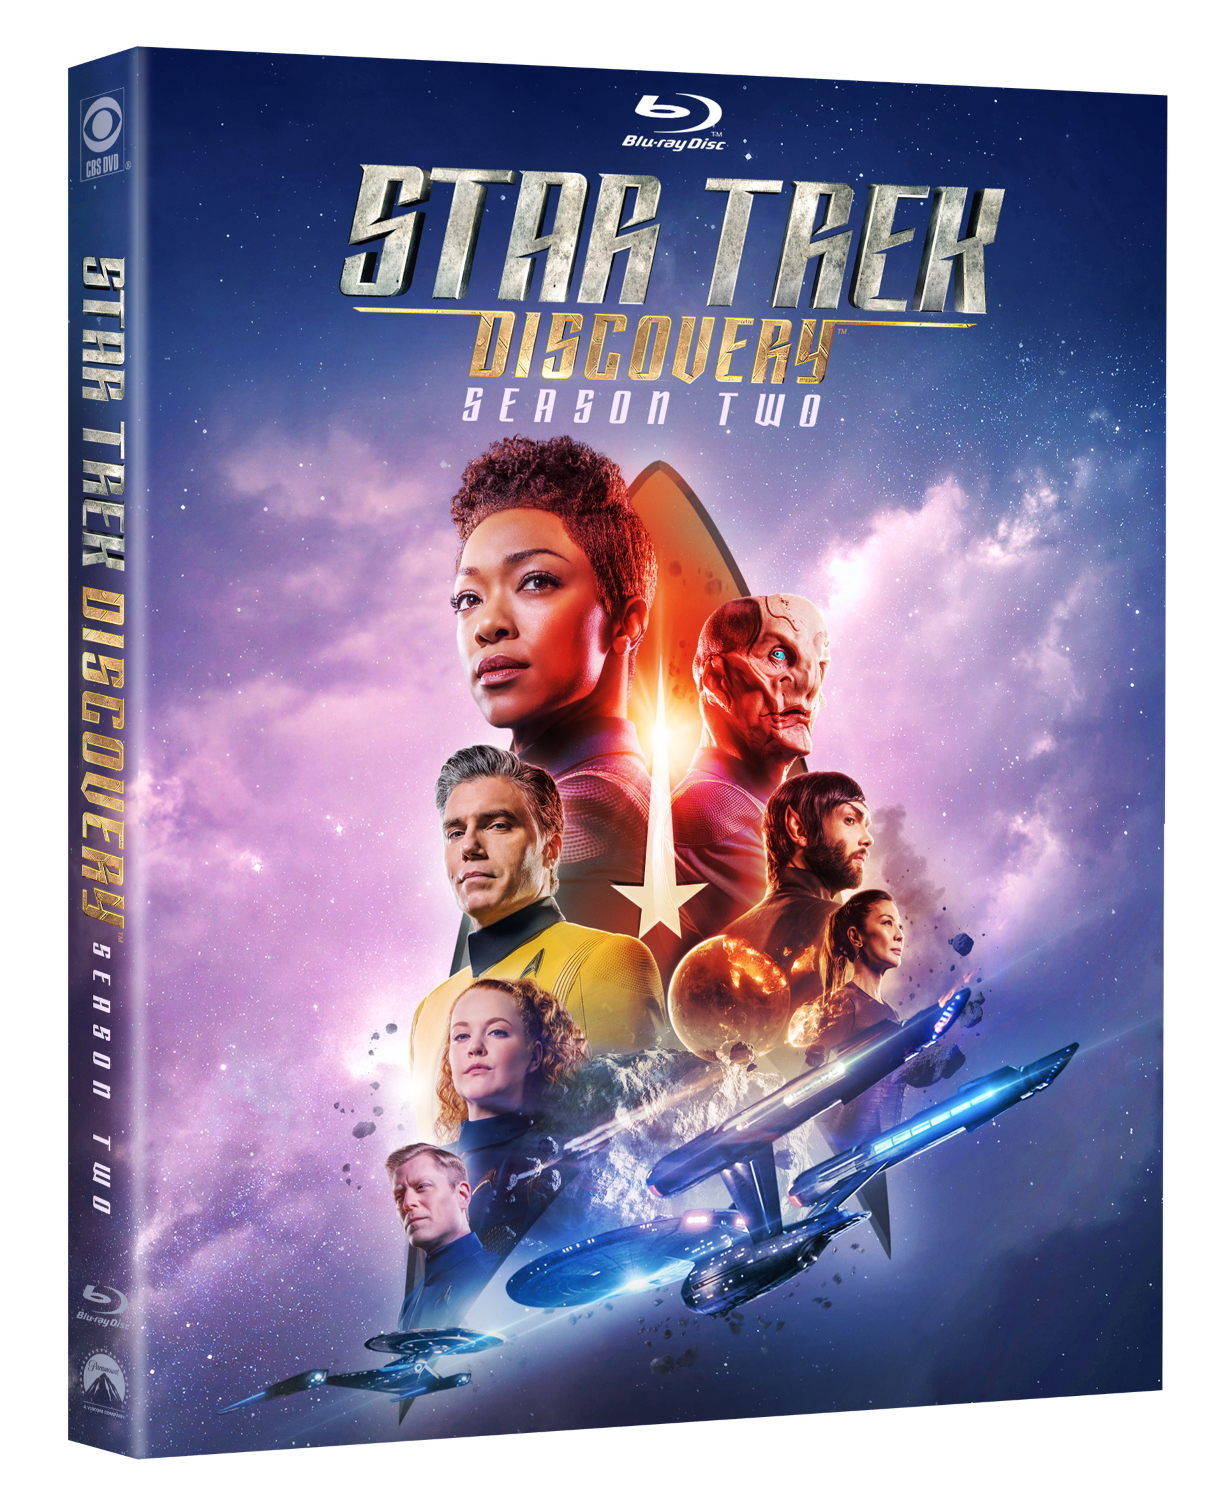 Star Trek Discovery Season 2 Blu-ray Cover